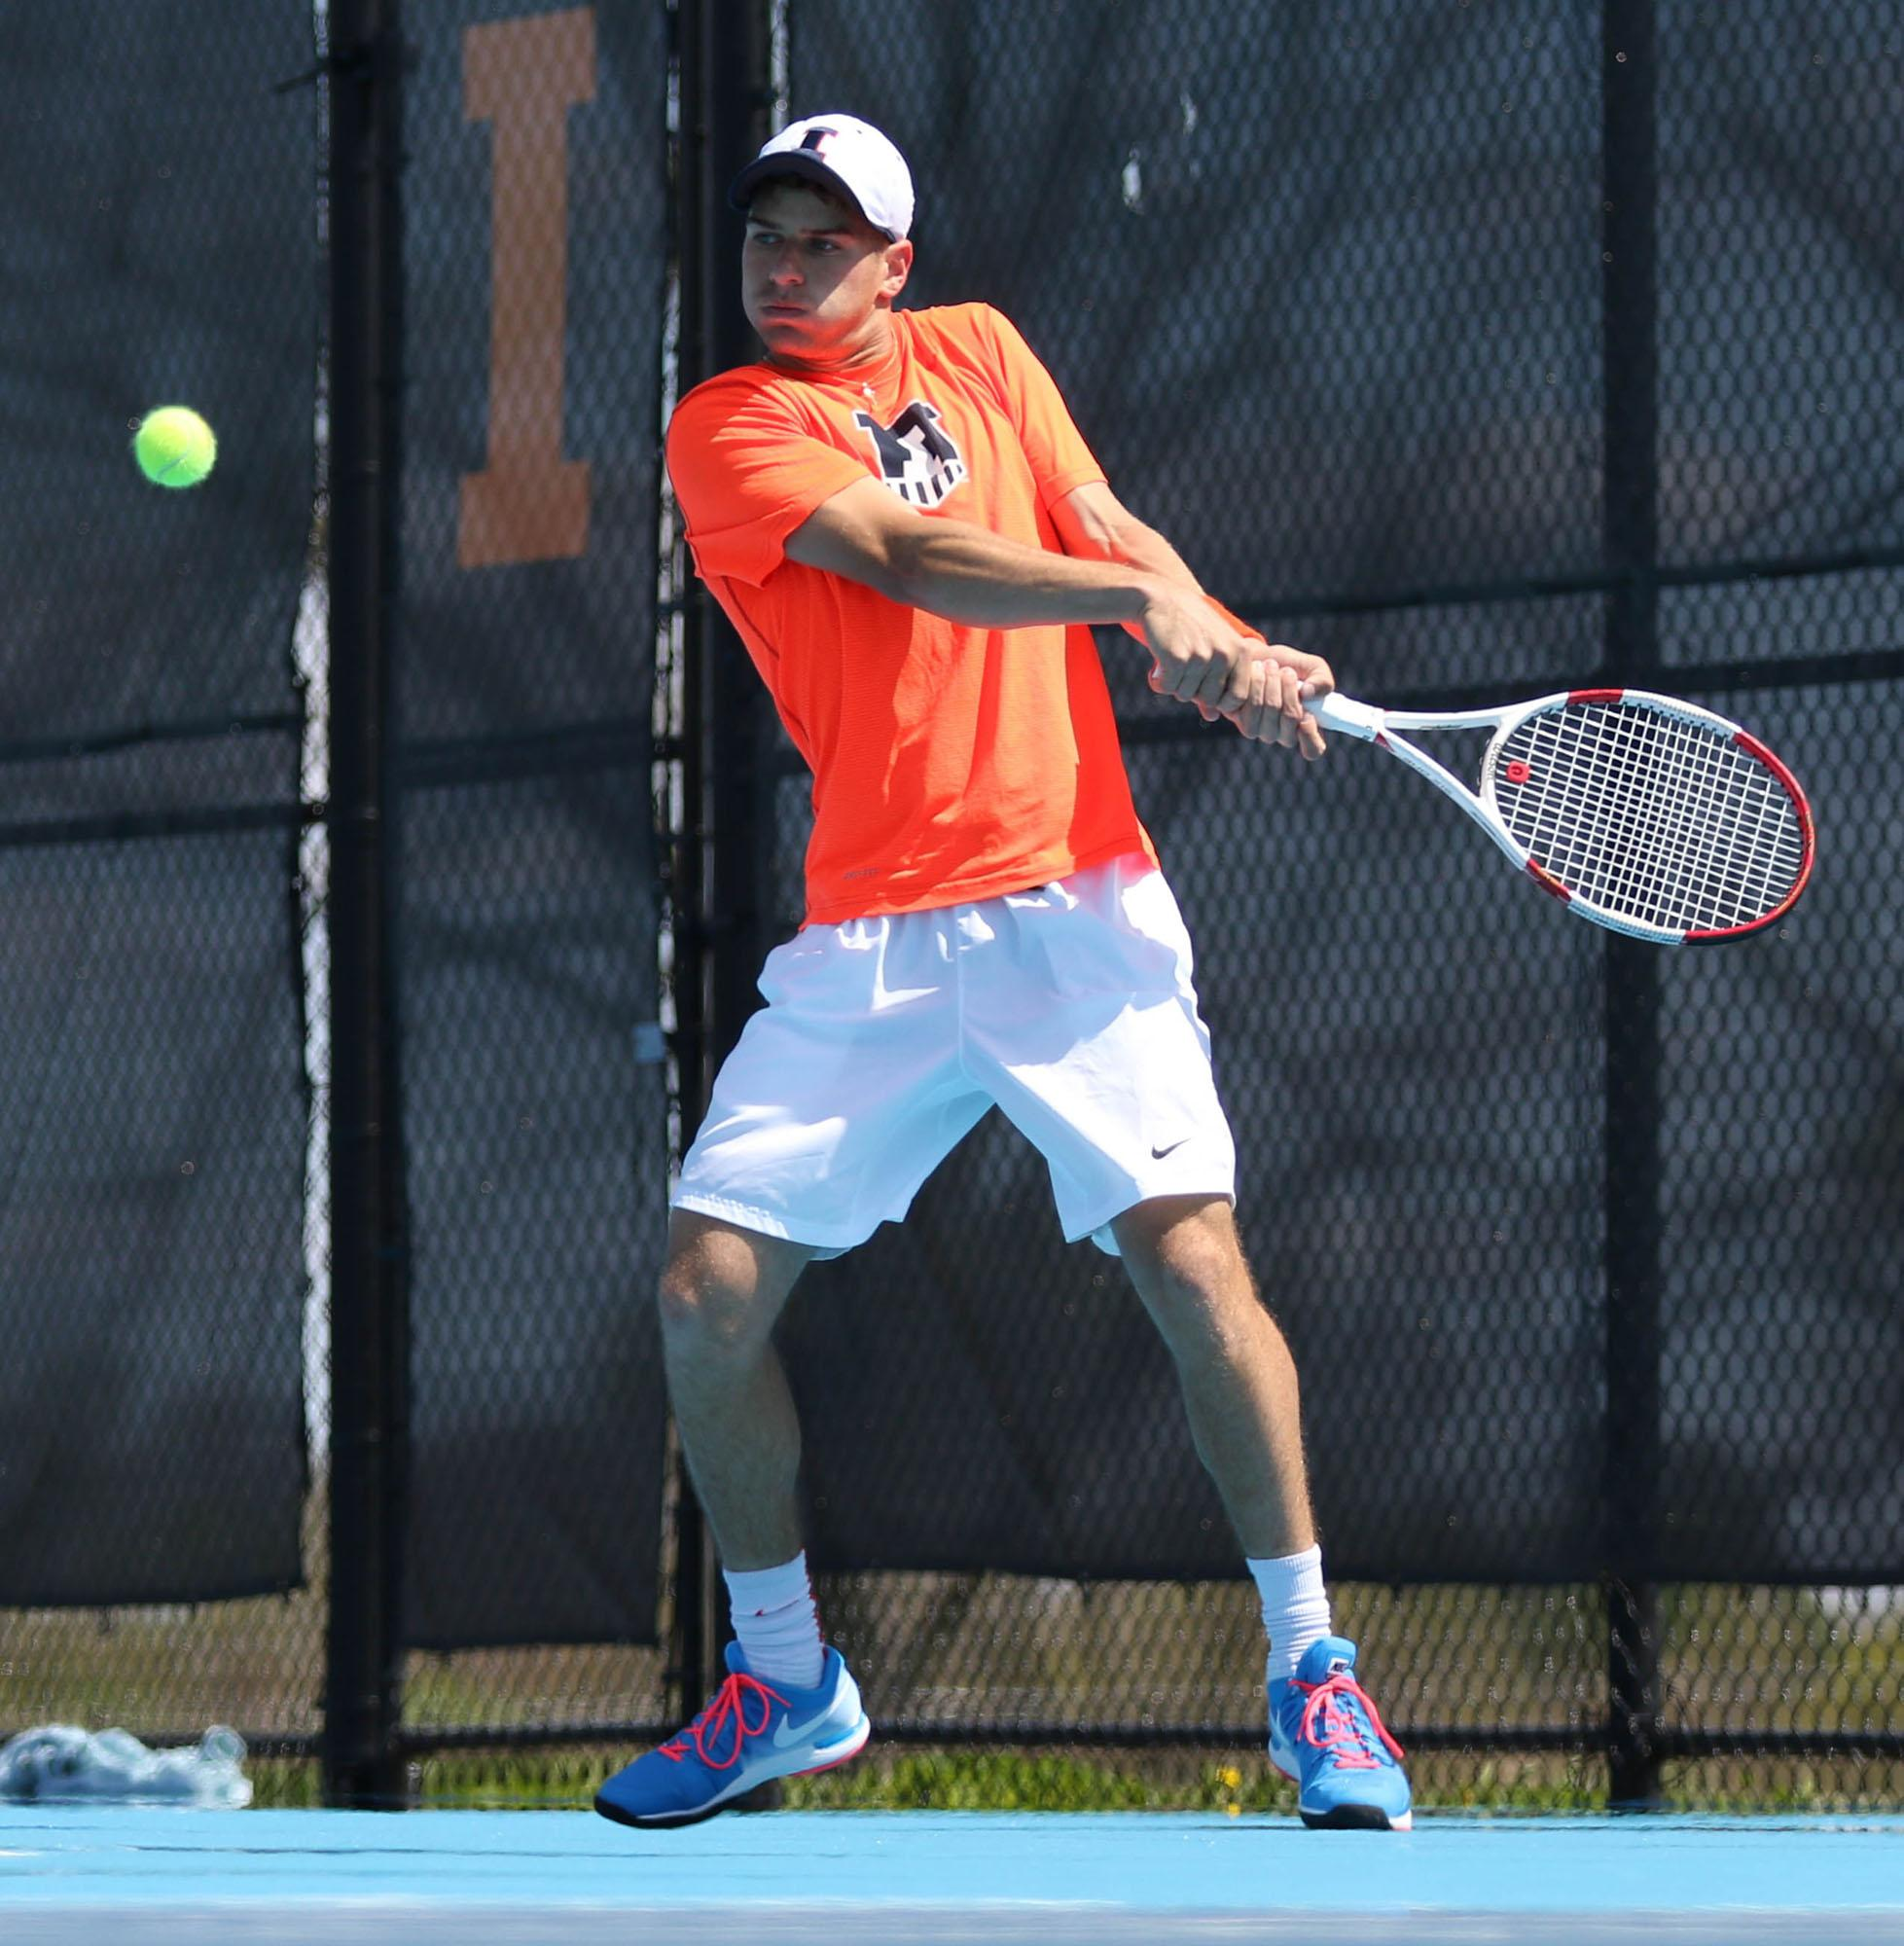 Illinois Aron Hiltzik attempts to return the ball during the Big Ten Men's Tennis Tournament final against Ohio State at the Khan Outdoor Tennis Complex, on Sunday, April 26, 2015. The Illini won 4-0.